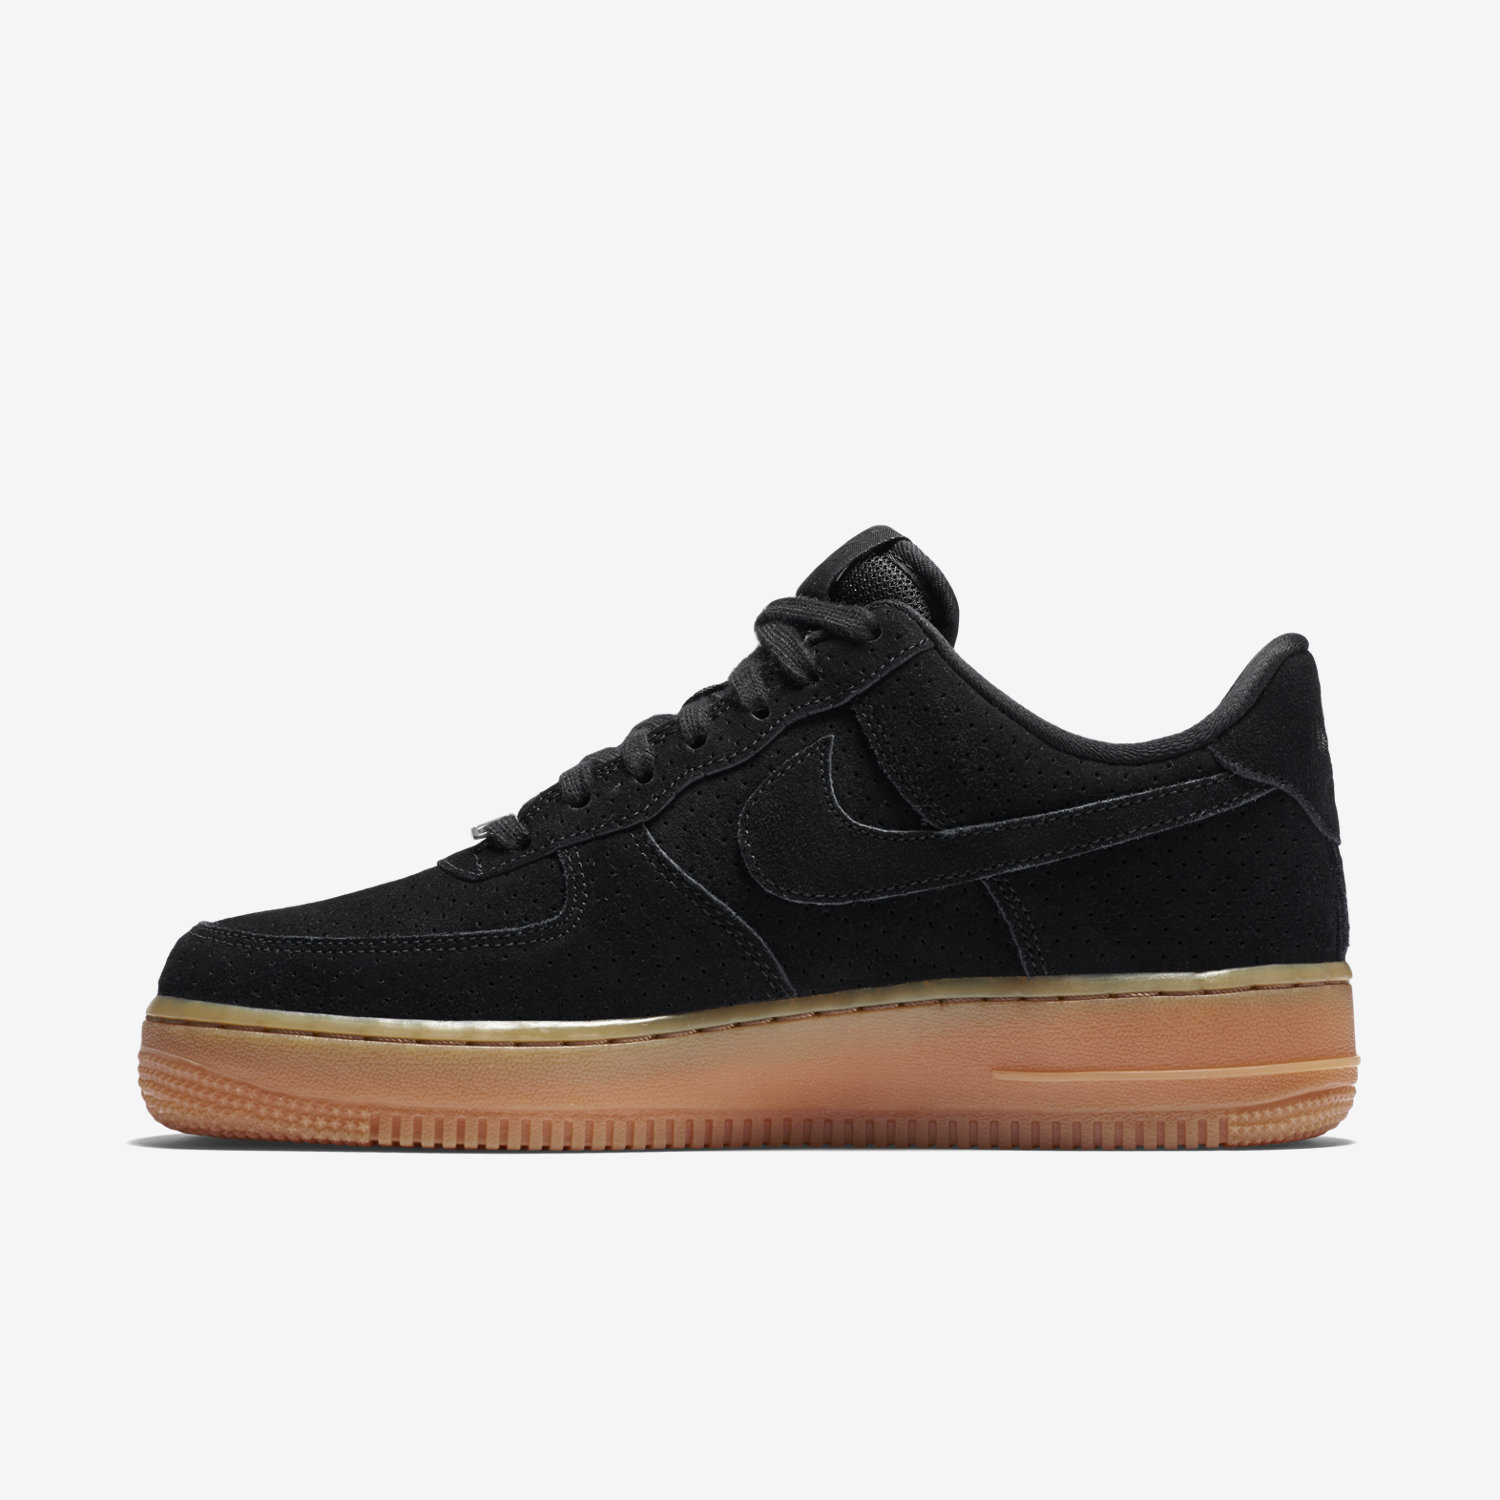 nike air force 1 suede grey tournesols van gogh. Black Bedroom Furniture Sets. Home Design Ideas